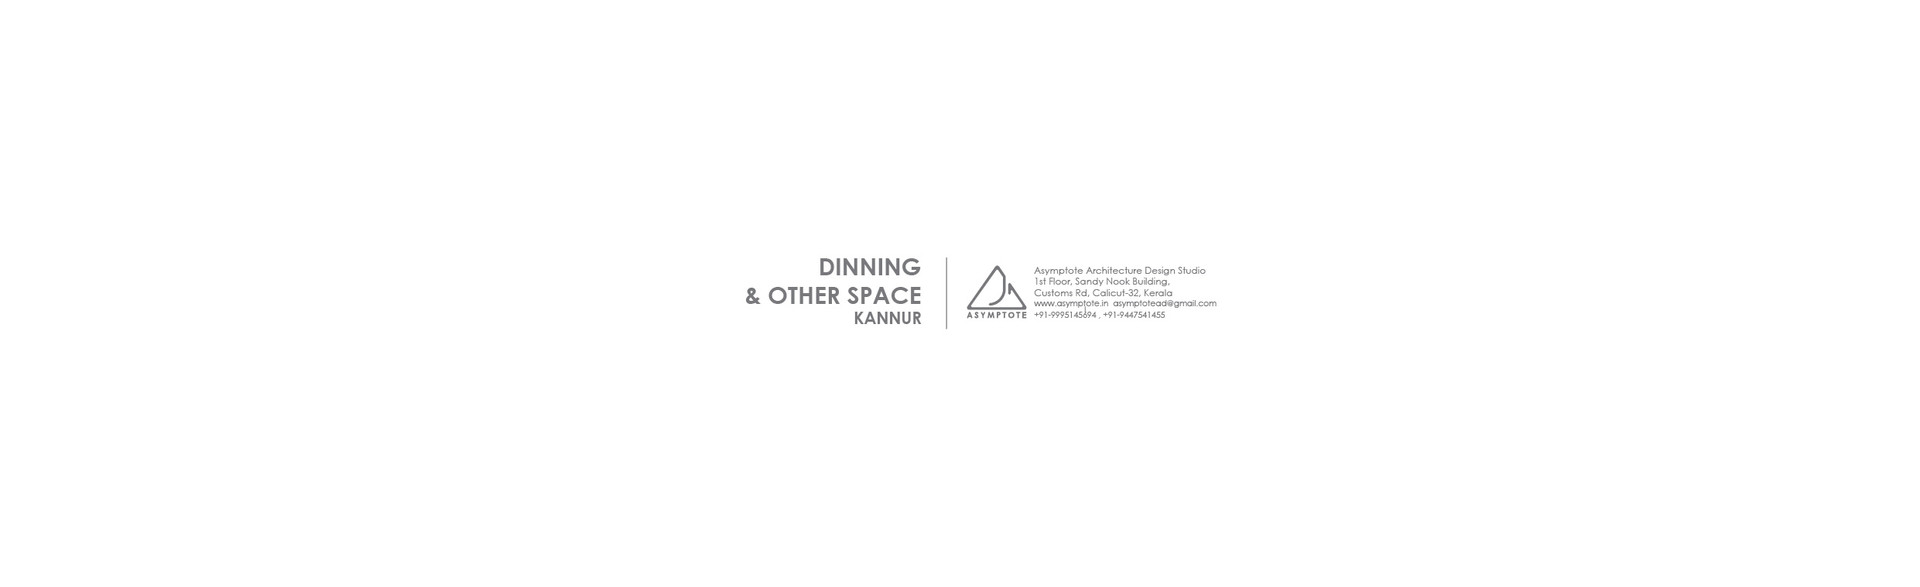 DINNING AND OTHER SPACE-01.jpg